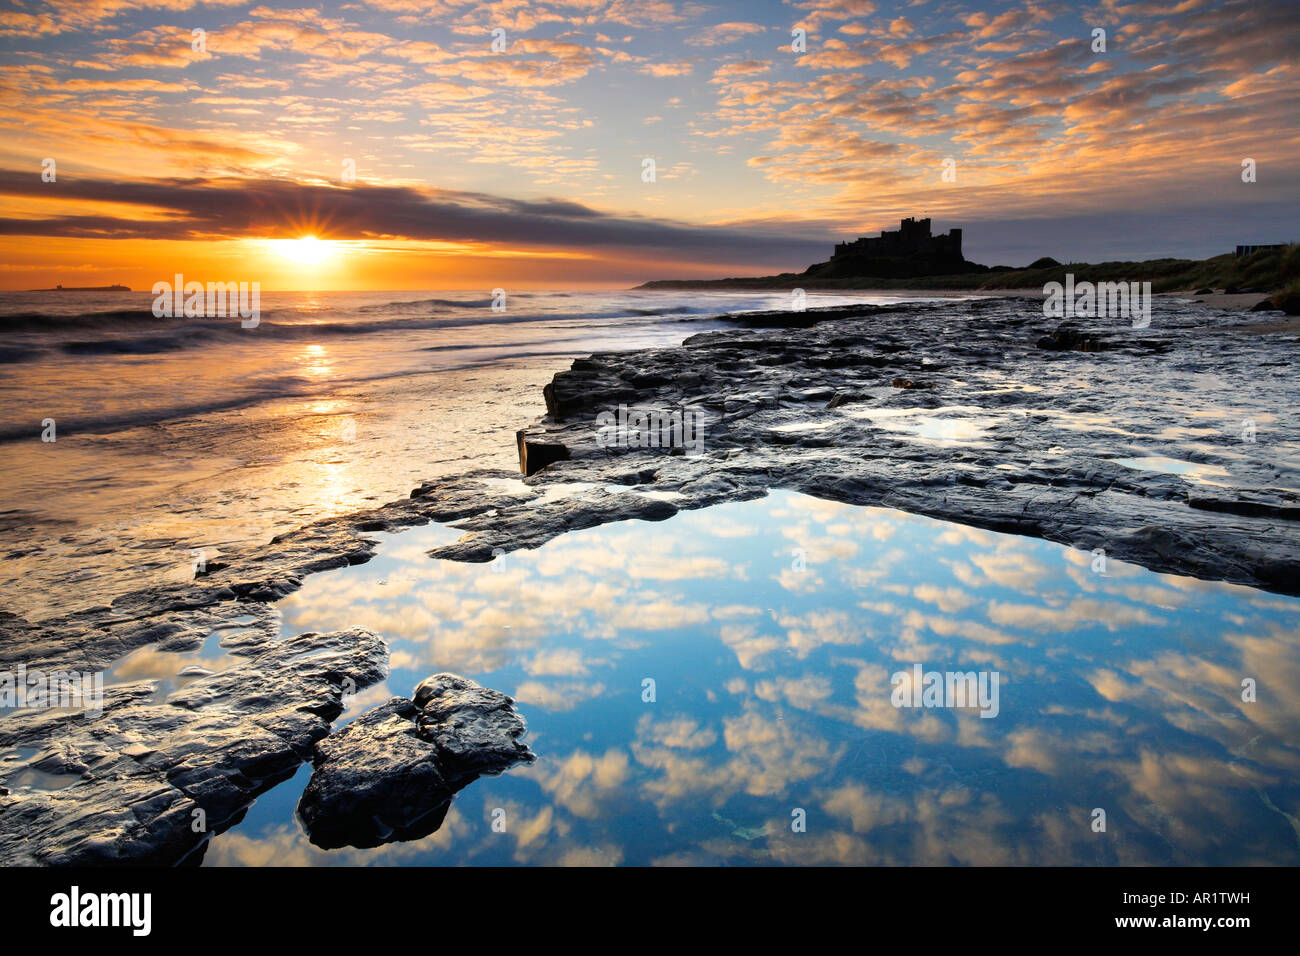 Spectacular sunrise on the coast near Bamburgh Castle, Northumberland - Stock Image